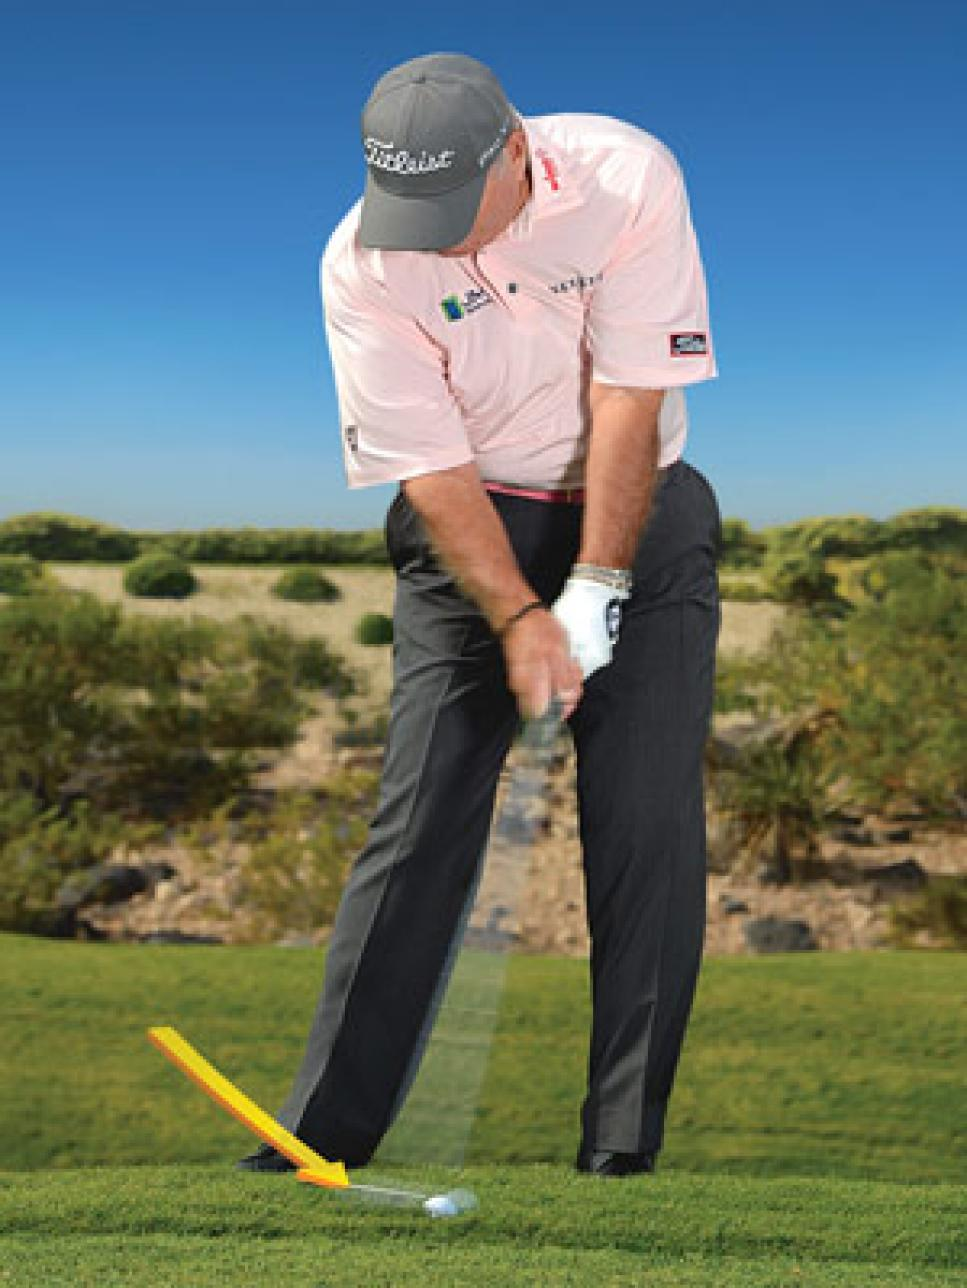 instruction-2013-11-inar01-butch-harmon-flyer-lie.jpg